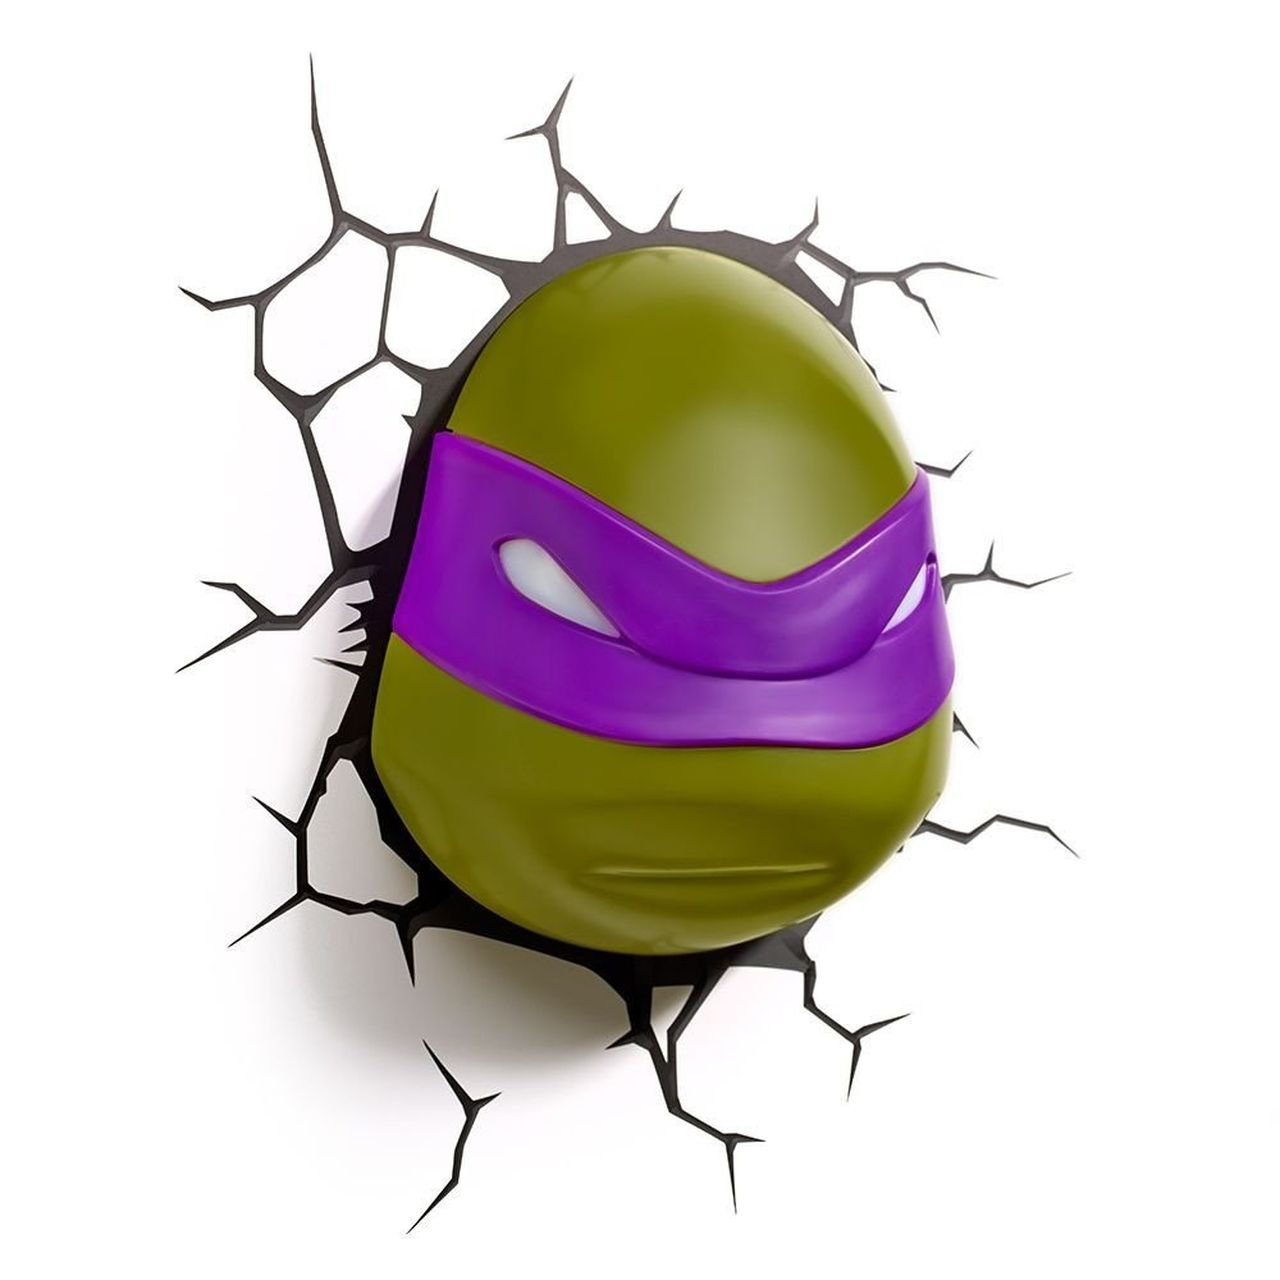 Luminária 3D Rosto do Donatello: As Tartarugas Ninja (Teenage Mutant Ninja Turtles) Light FX